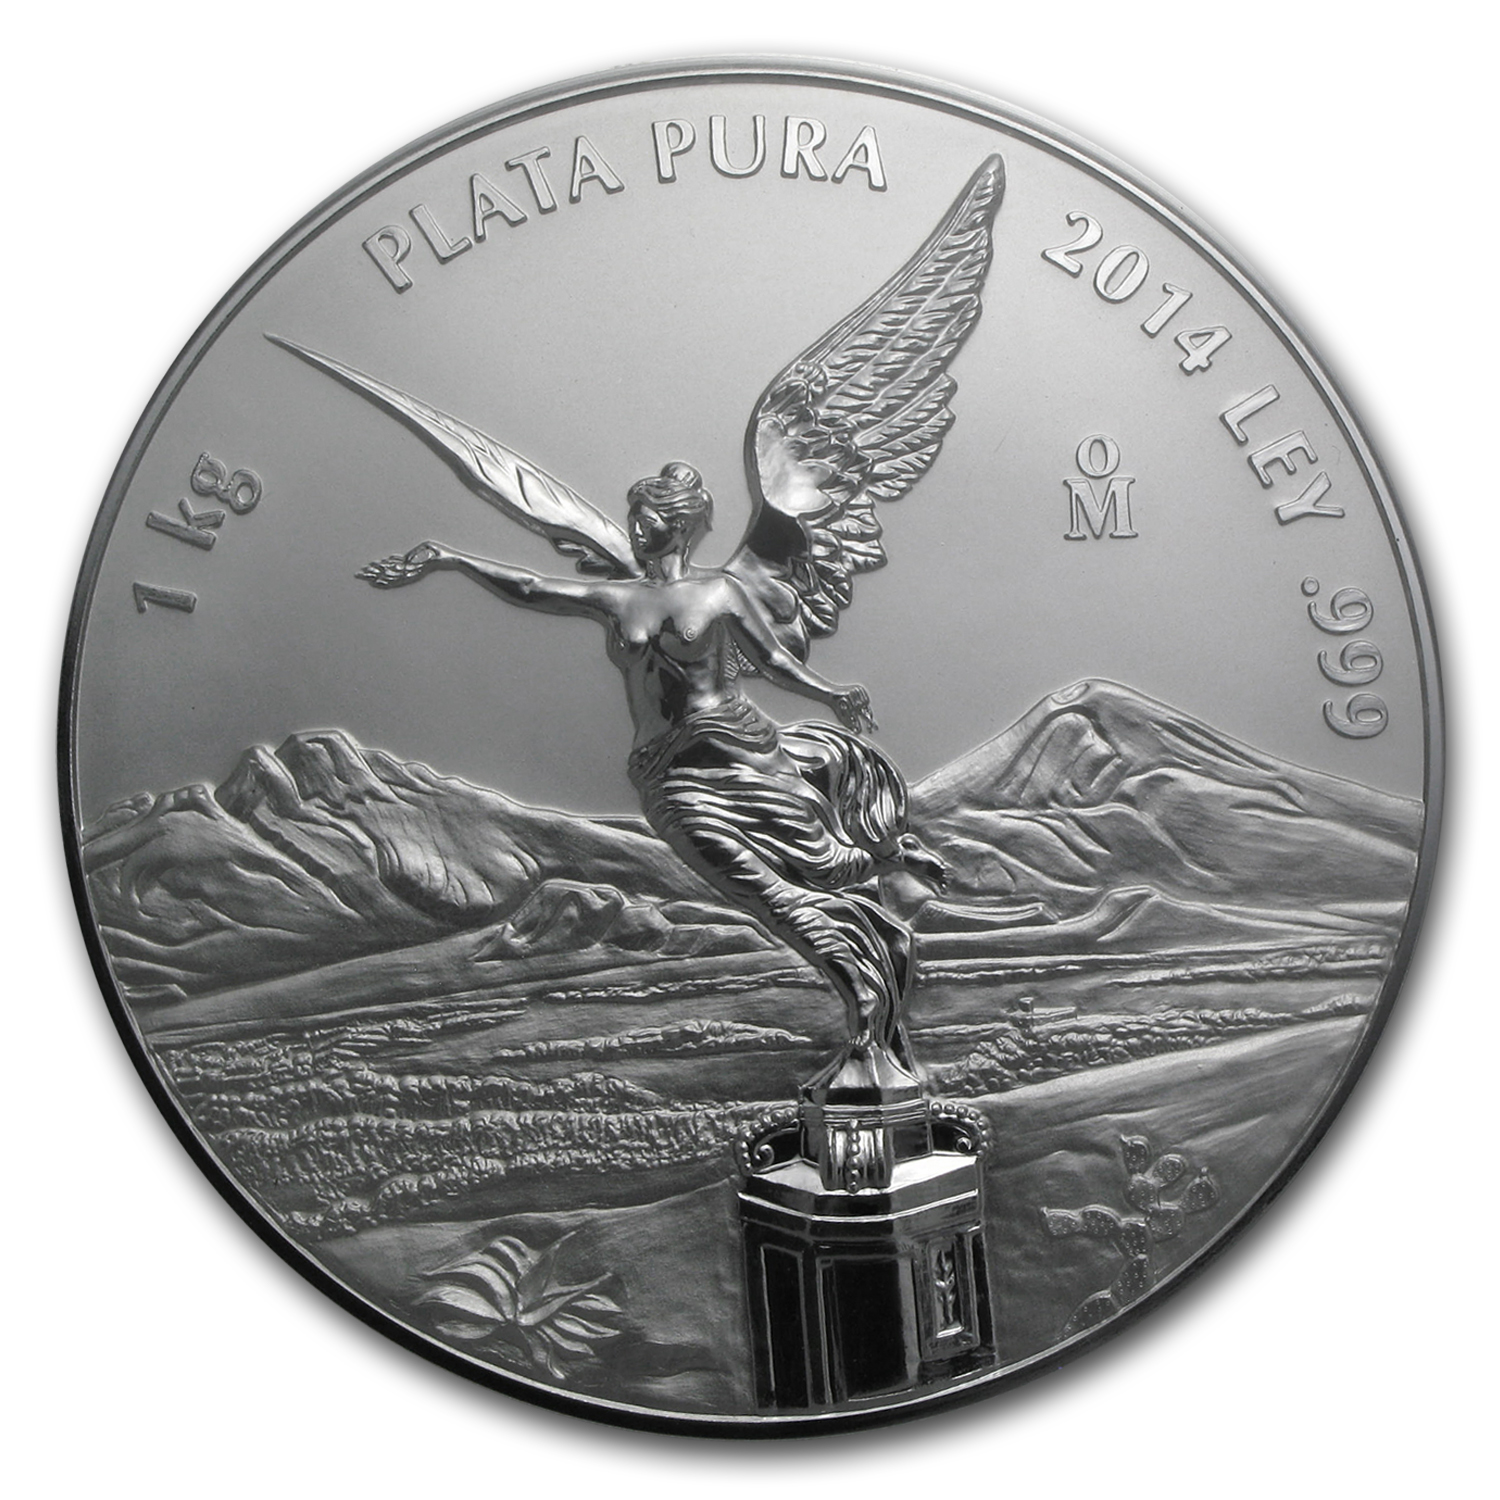 2014 Mexico 1 kilo Silver Libertad Proof Like (w/Box & COA)